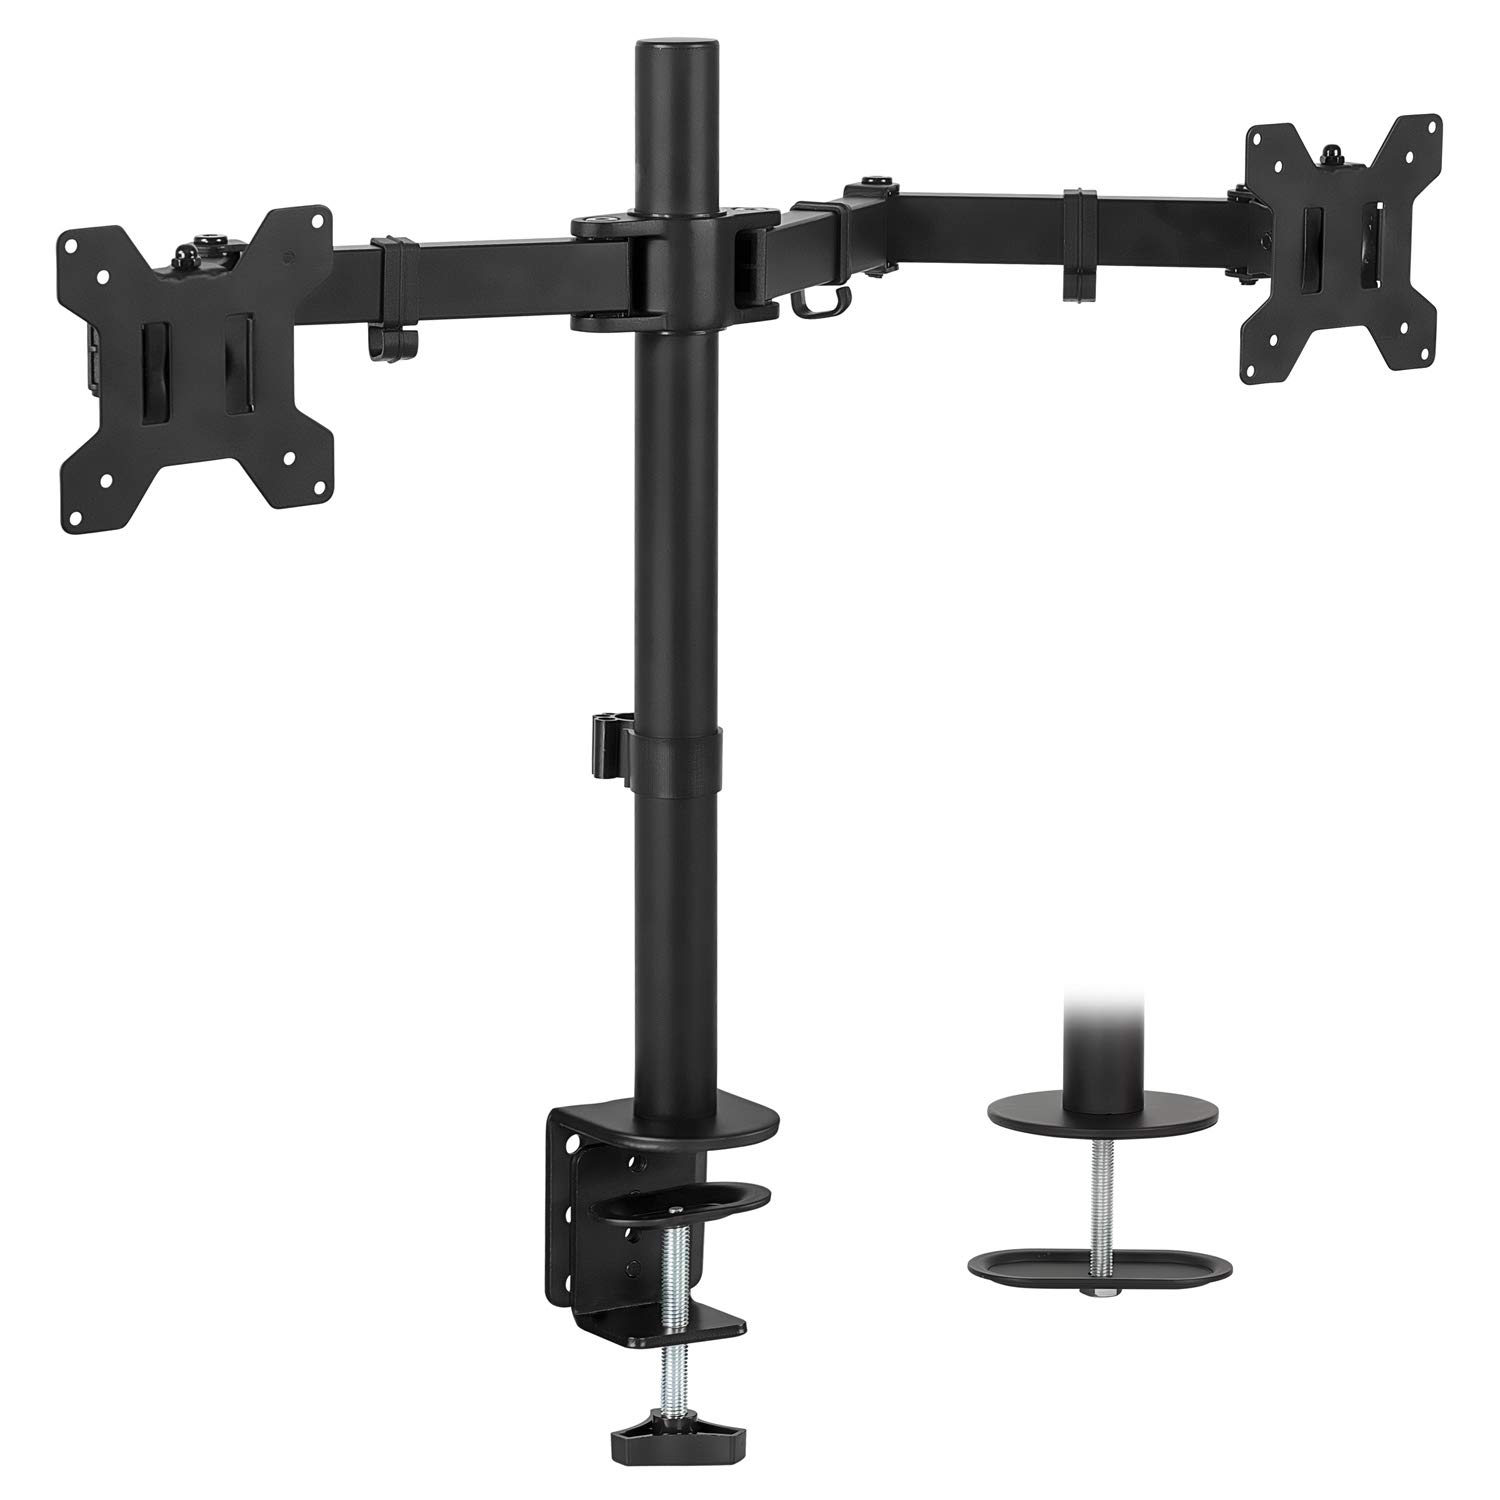 Mount-It! Dual Monitor Mount | Double Monitor Desk Stand | Two Heavy Duty Full Motion Adjustable Arms Fit 2 Computer Screens 17 19 20 21 22 24 27 Inch | VESA Compatible | C-Clamp and Grommet Base